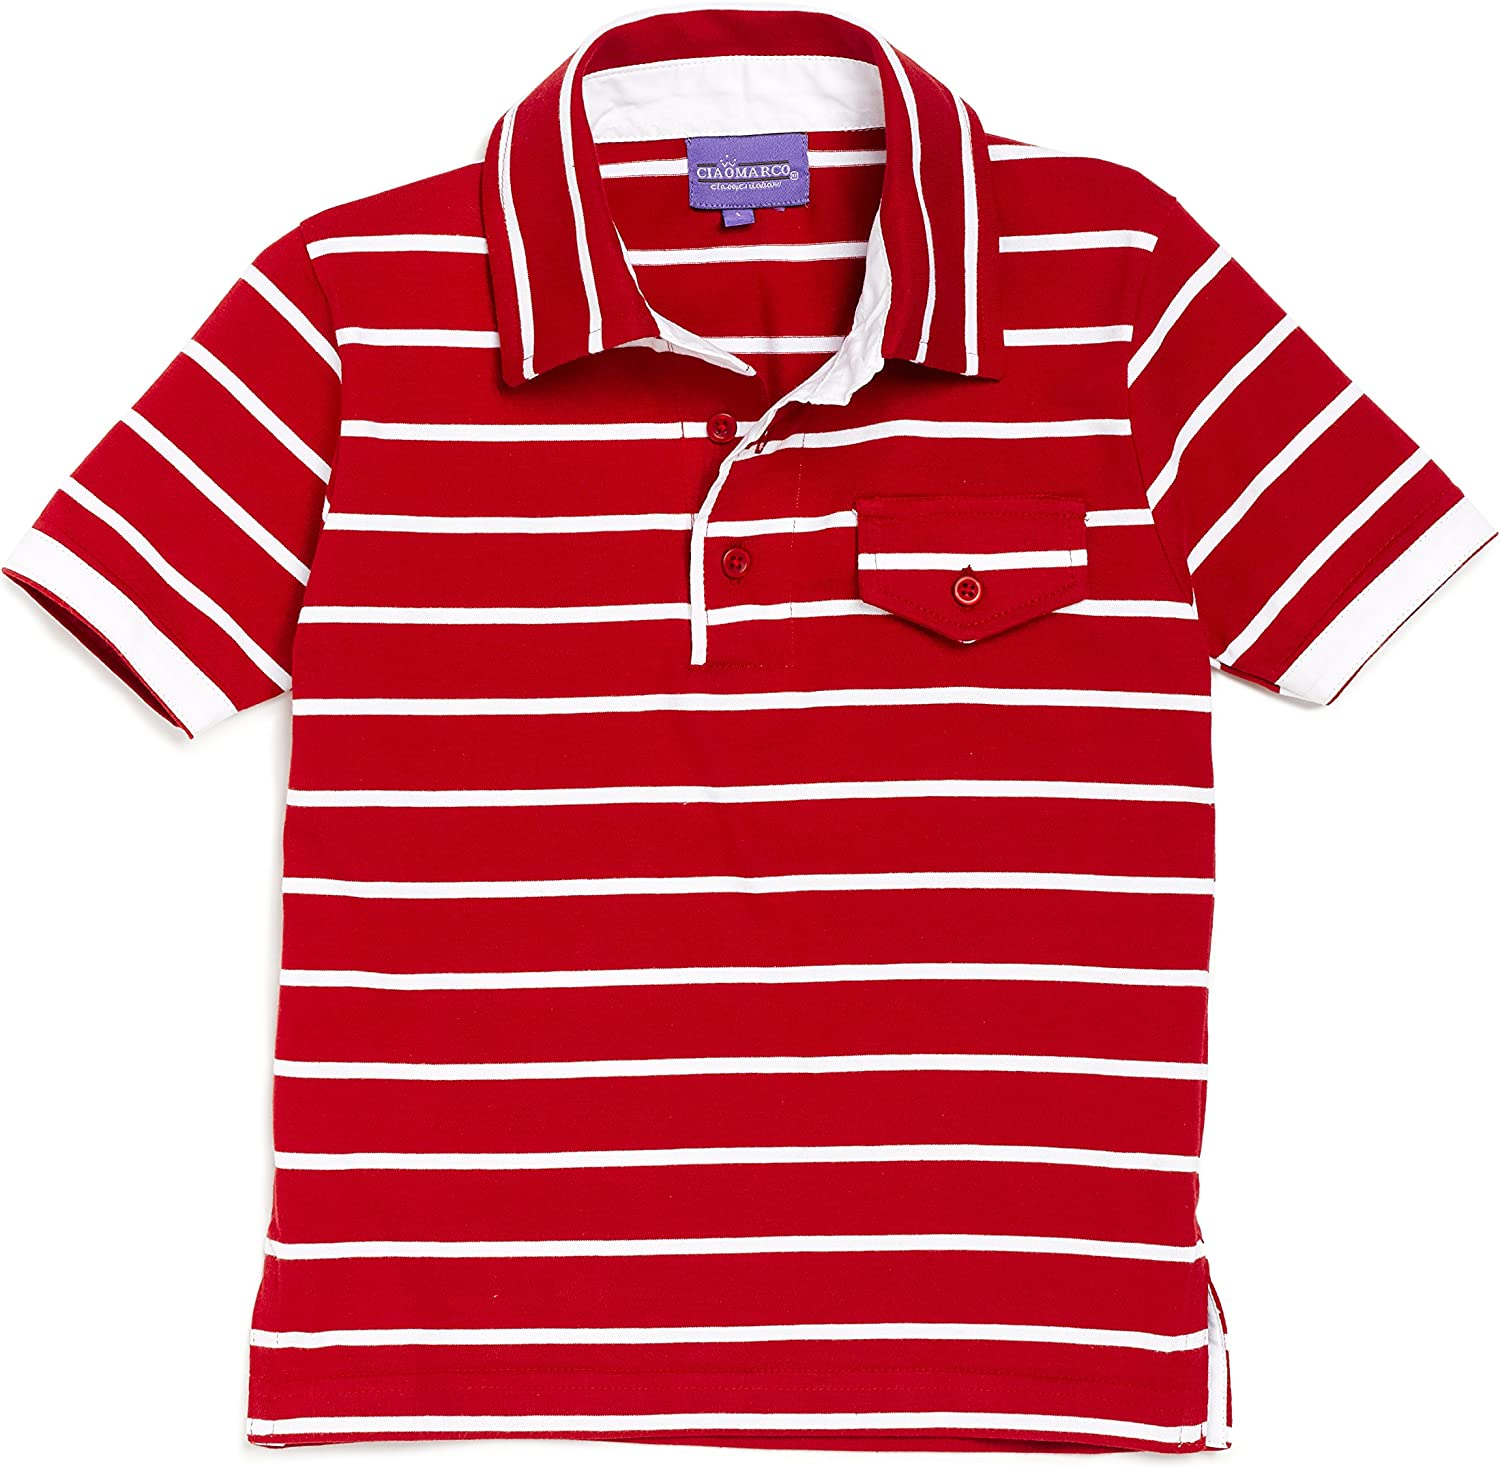 Ciao Marco Red and White Striped Polo